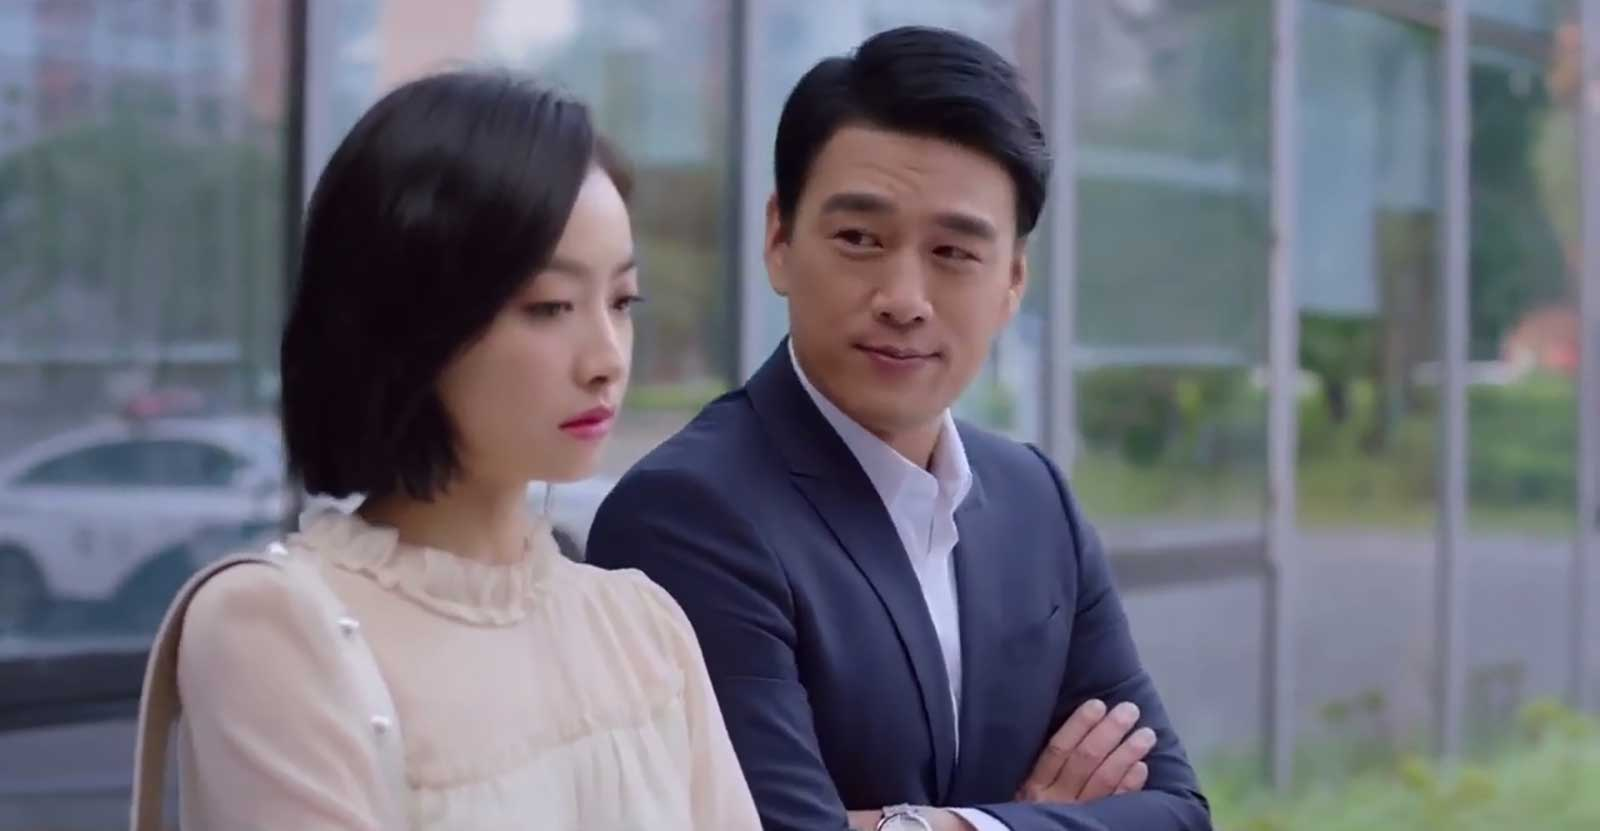 In the search for the perfect C-drama, you most likely have stumbled upon 'Find Yourself'. If you didn't watch it, you need to. You'll quickly fall in love.